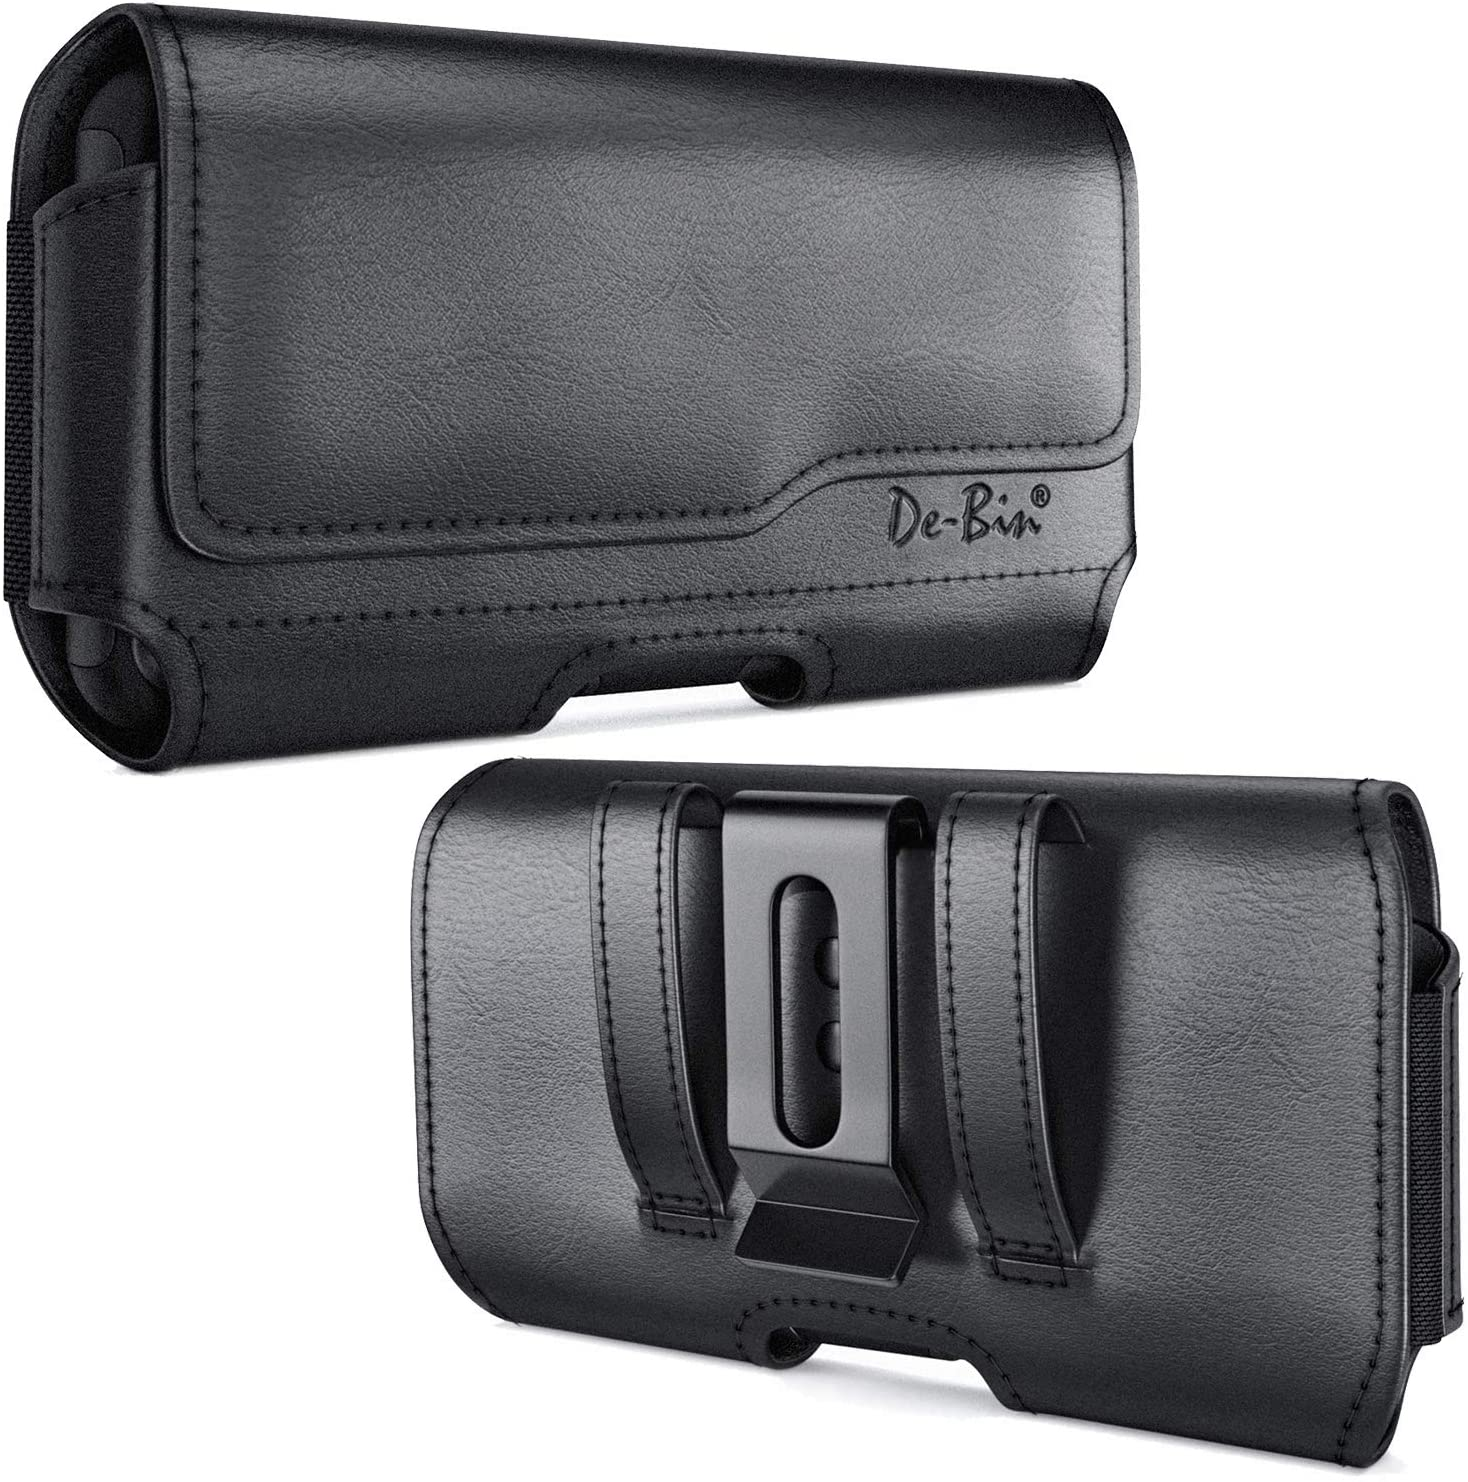 De-Bin Belt Holster Designed for iPhone 12 Pro Max /11 Pro Max / Xs Max / 8 Plus / 7 Plus / 6s Plus, Belt Case with Belt Clip Phone Belt Holder Pouch Compatible with iPhone Otterbox / Battery Case on